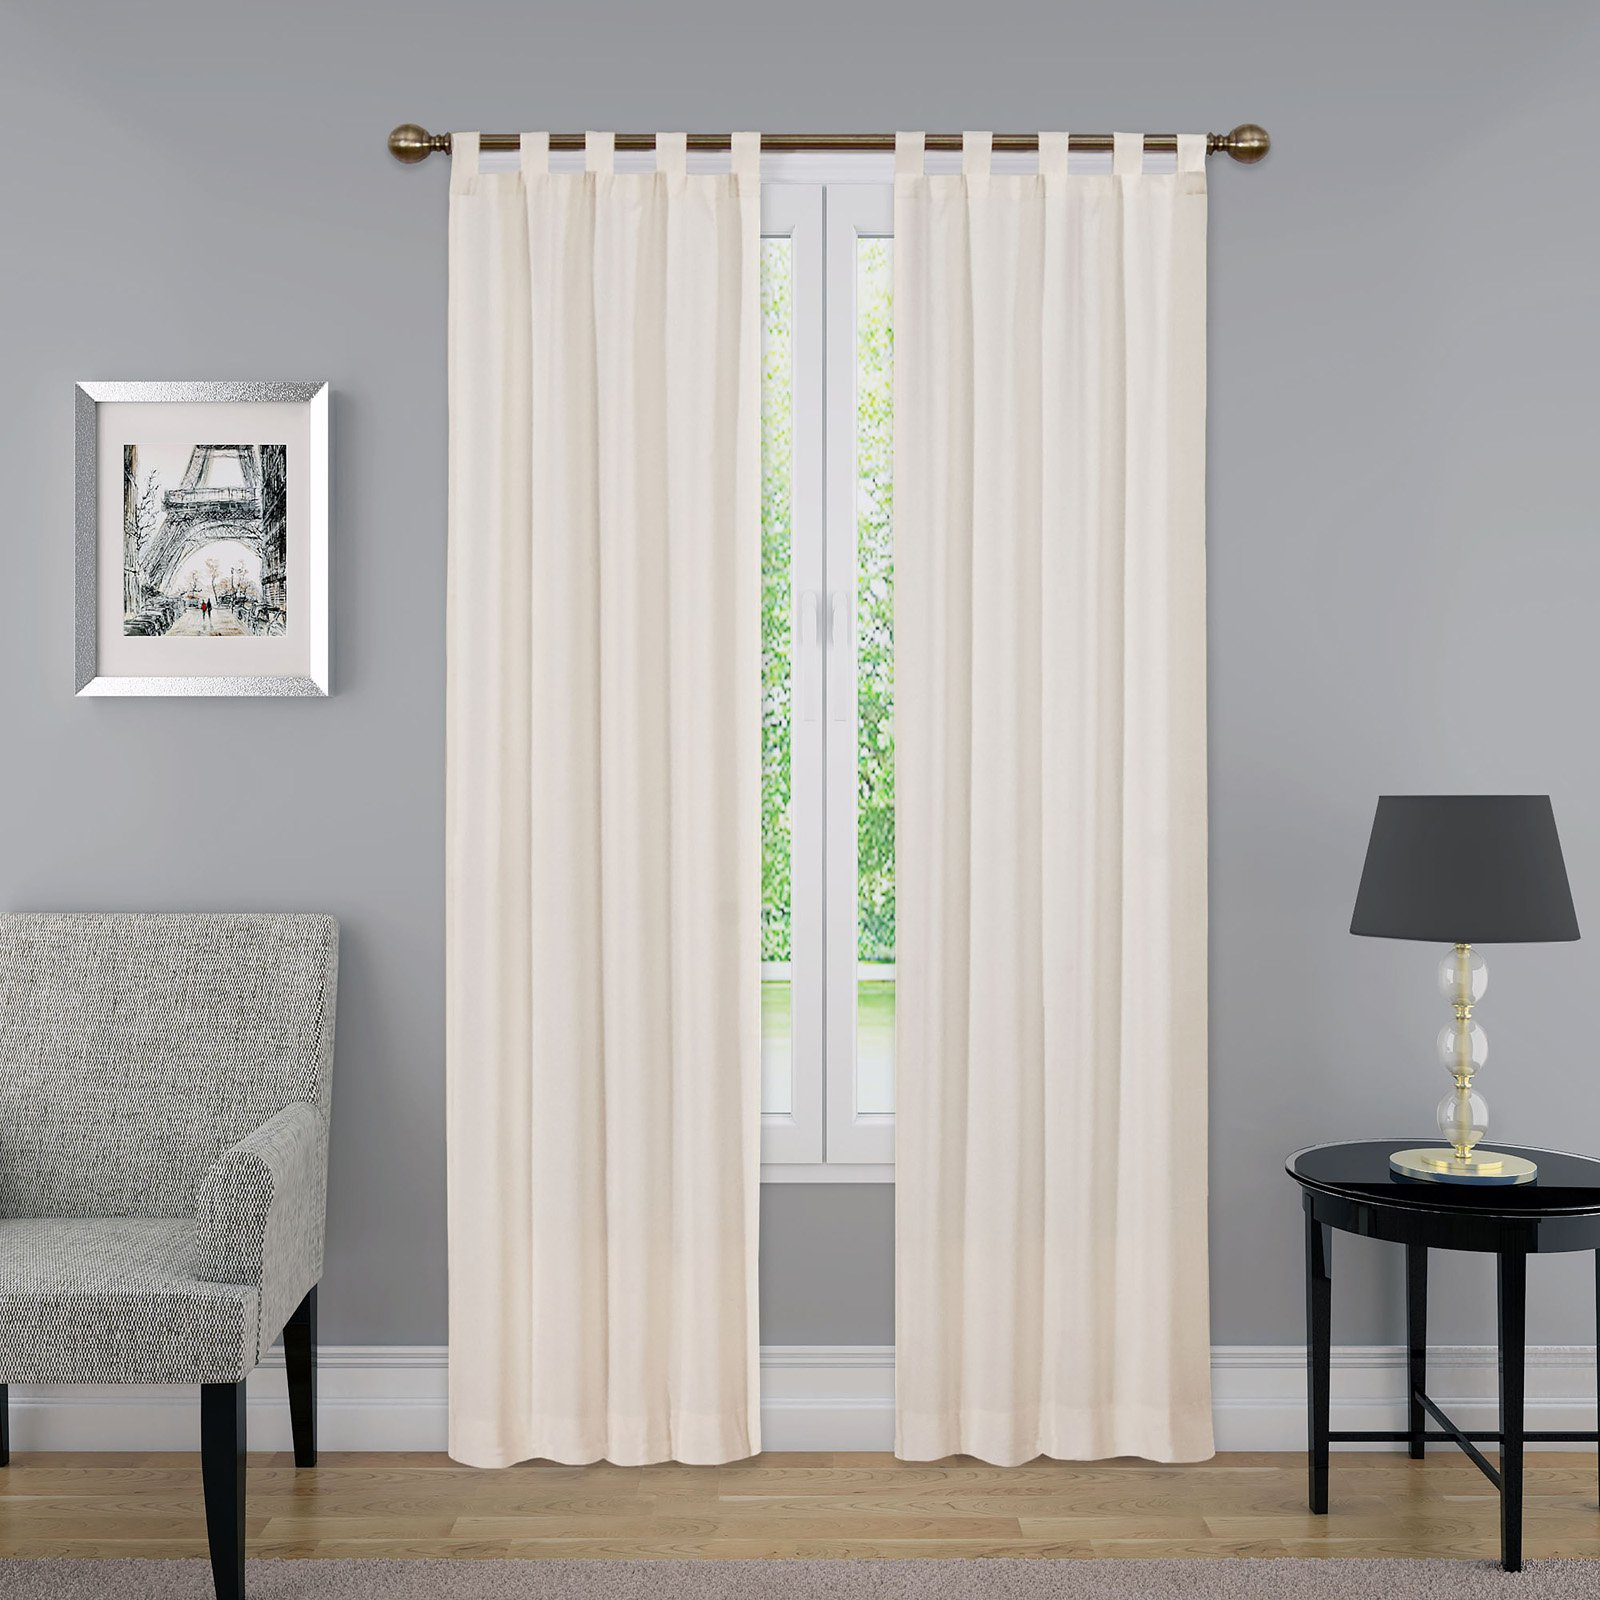 Pairs To Go Montana Curtain Panel Pair Grey In 2019 With Regard To Trendy Pairs To Go Victoria Voile Curtain Panel Pairs (View 20 of 20)